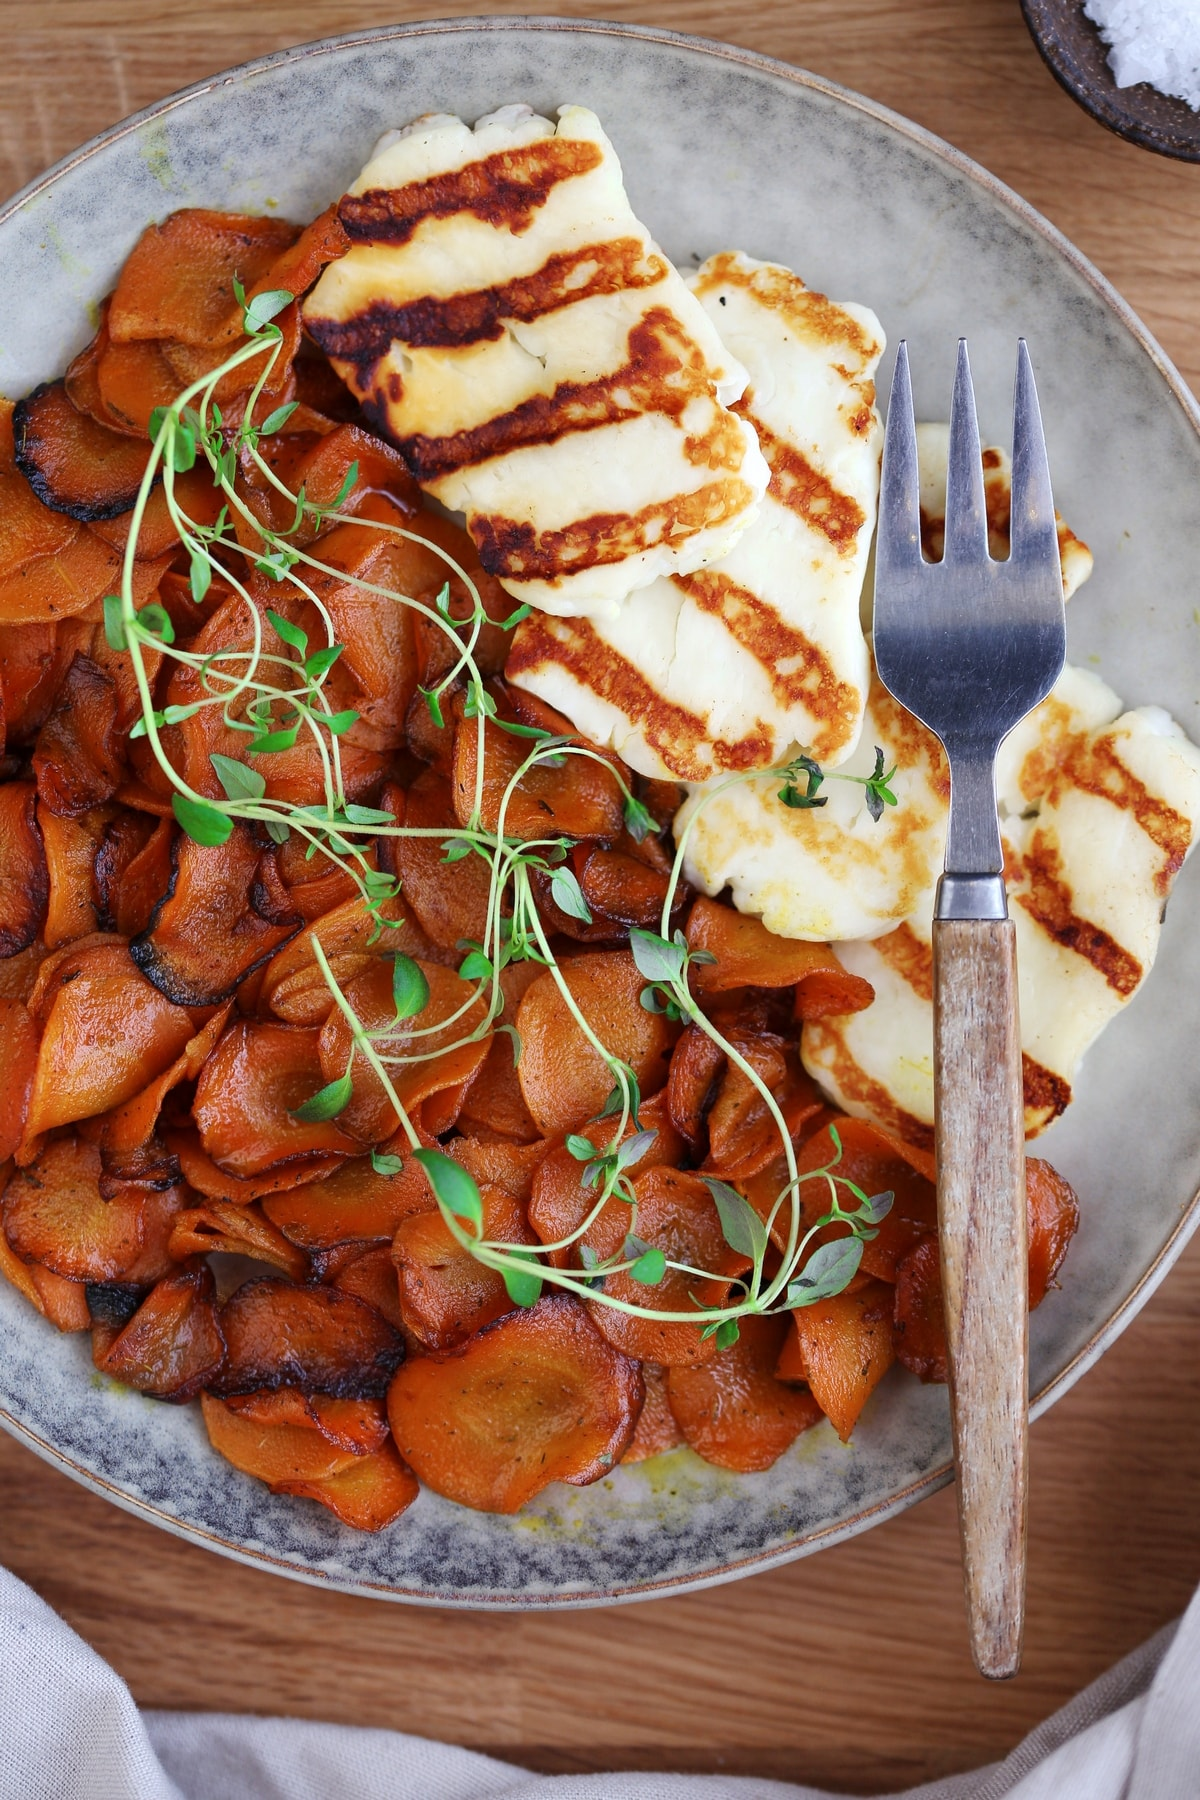 Sauteed carrots served as side dish to grilled halloumi.